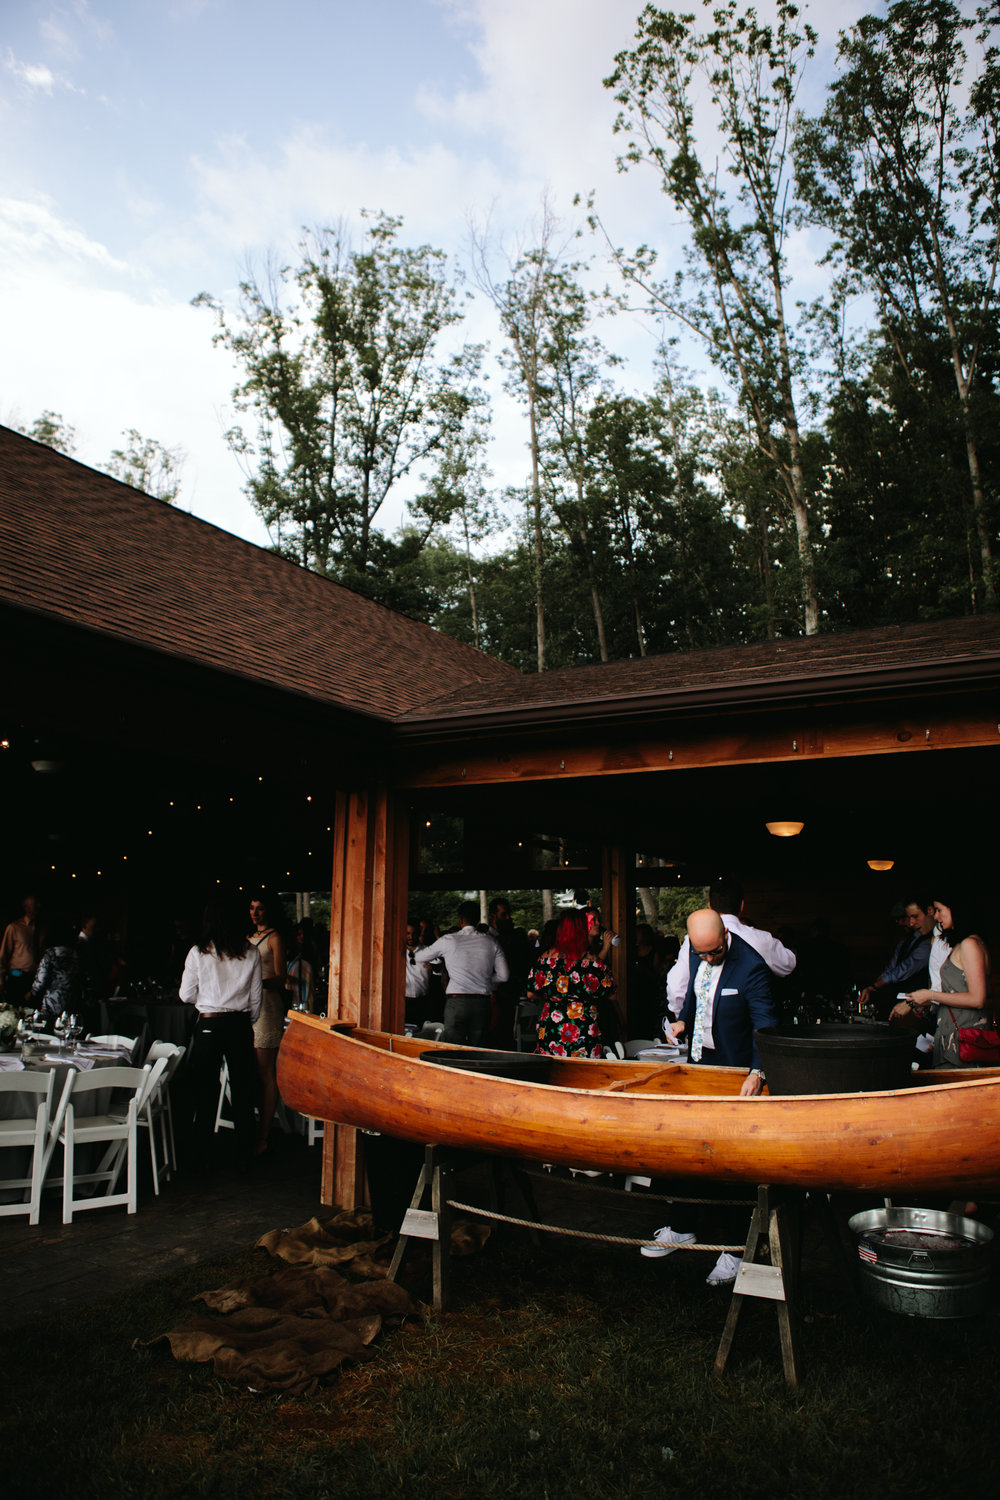 camp-wedding-drink-canoe-2.jpg